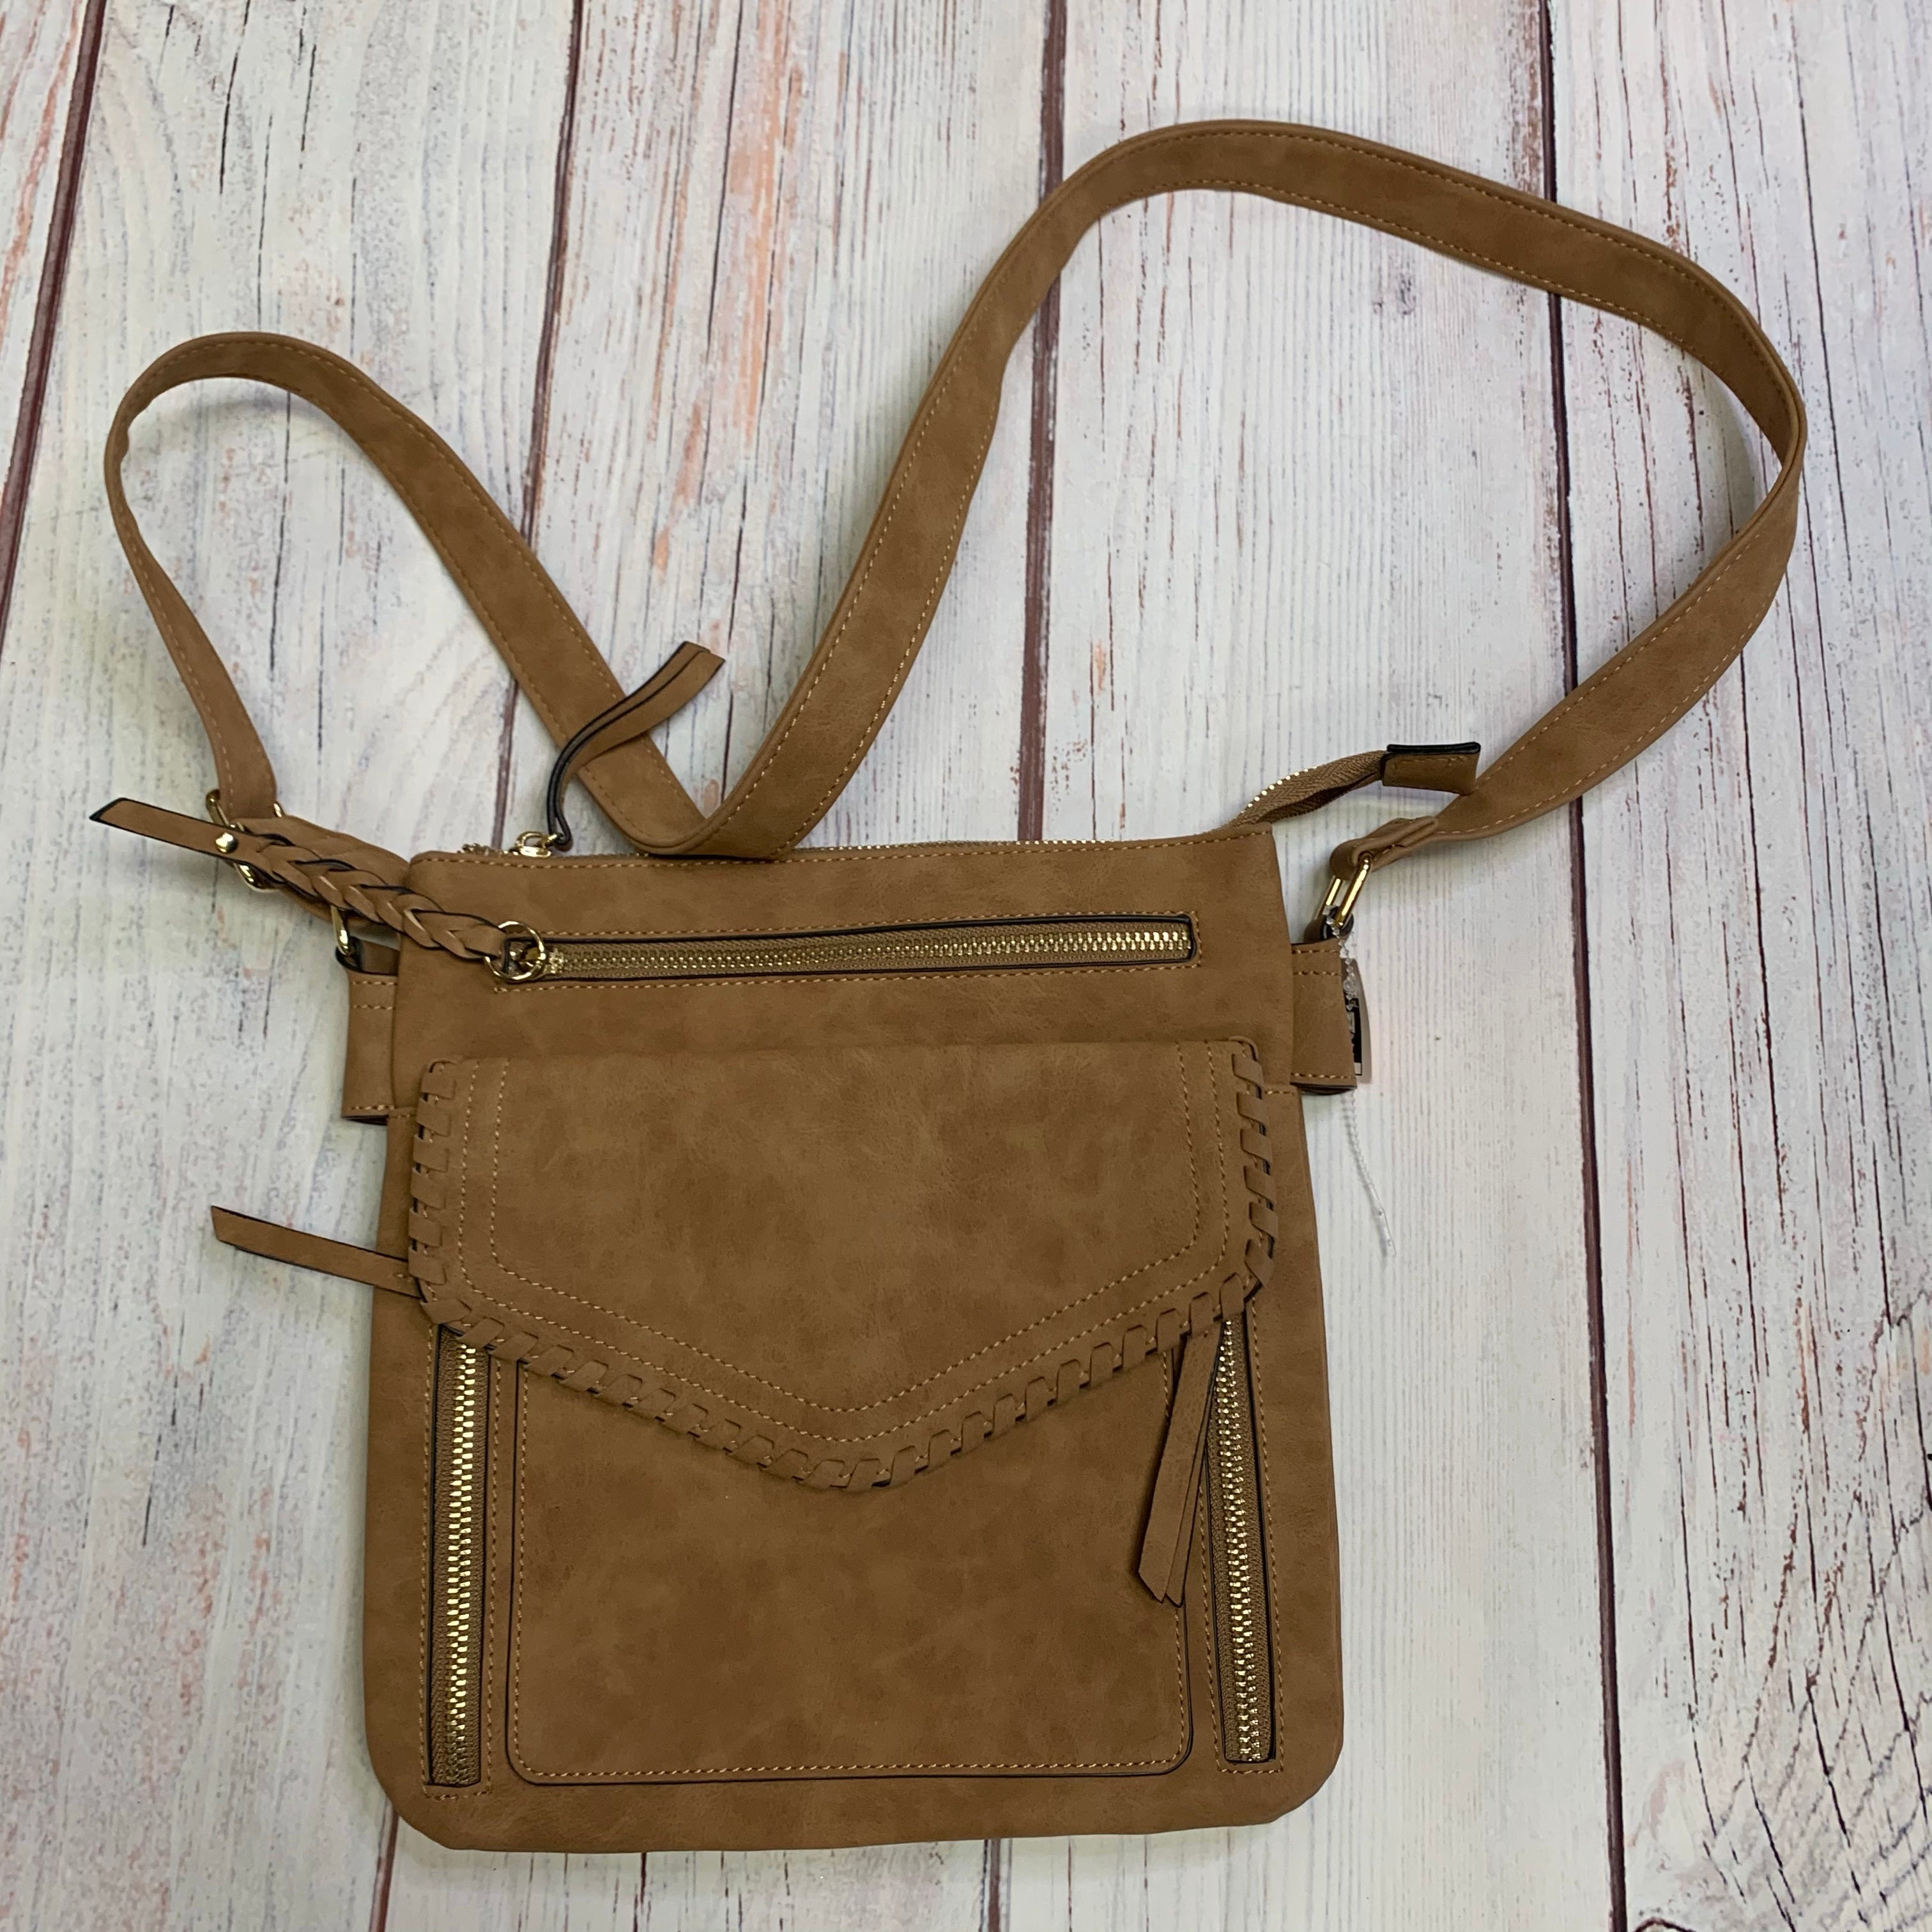 Primary Photo - BRAND: ALTARD STATE <BR>STYLE: HANDBAG LEATHER <BR>COLOR: TAN <BR>SIZE: MEDIUM <BR>OTHER INFO: XBODY <BR>SKU: 257-257100-1005